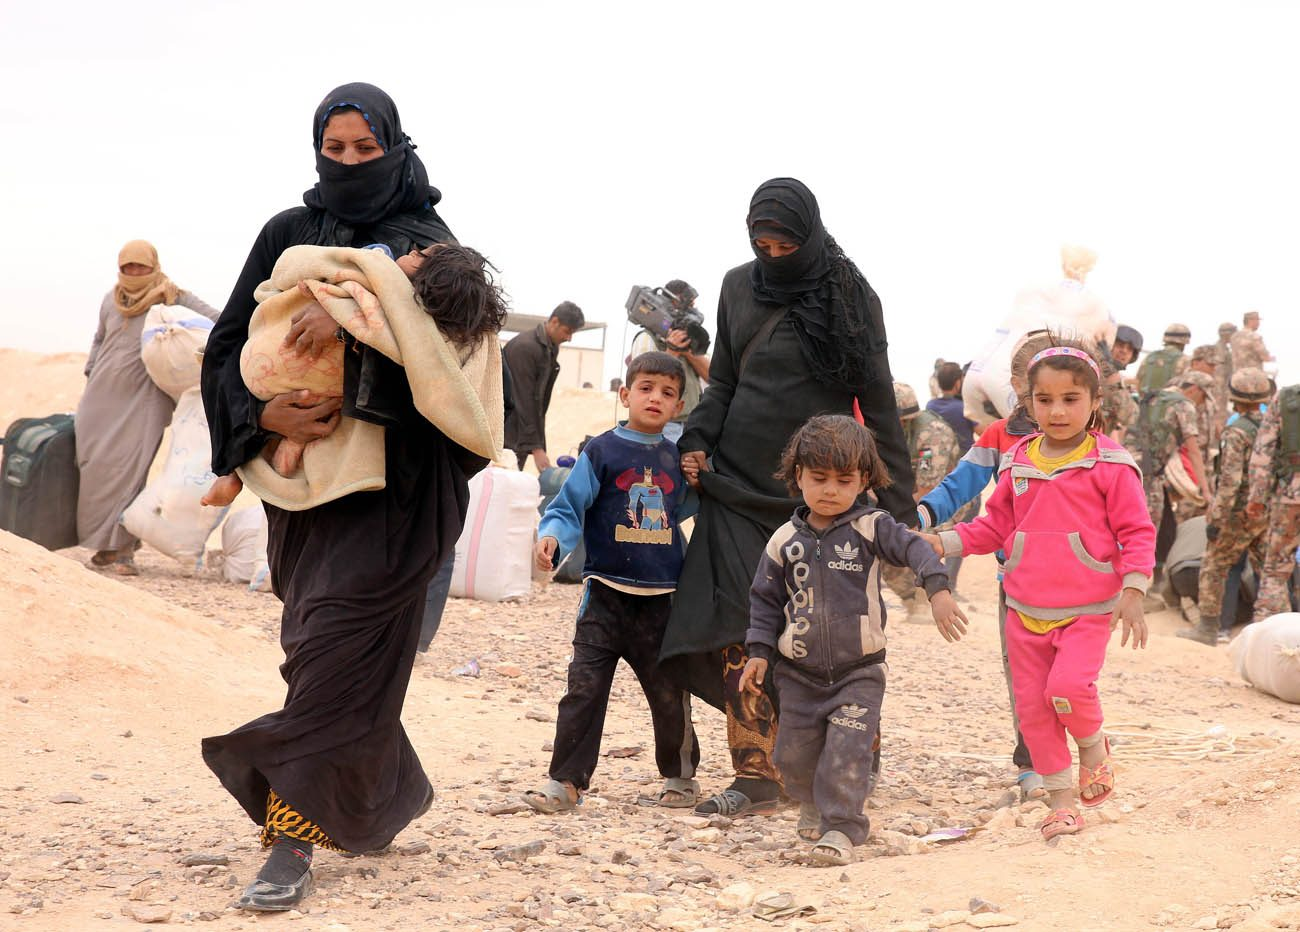 Syrian refugees arrive at a camp in 2016 in Royashed, Jordan. Promised resettlement in the United States, many Syrian refugees are frustrated over President Donald Trump's executive action banning their entry to the U.S. until further notice. (CNS photo/Jamal Nasrallah, EPA)